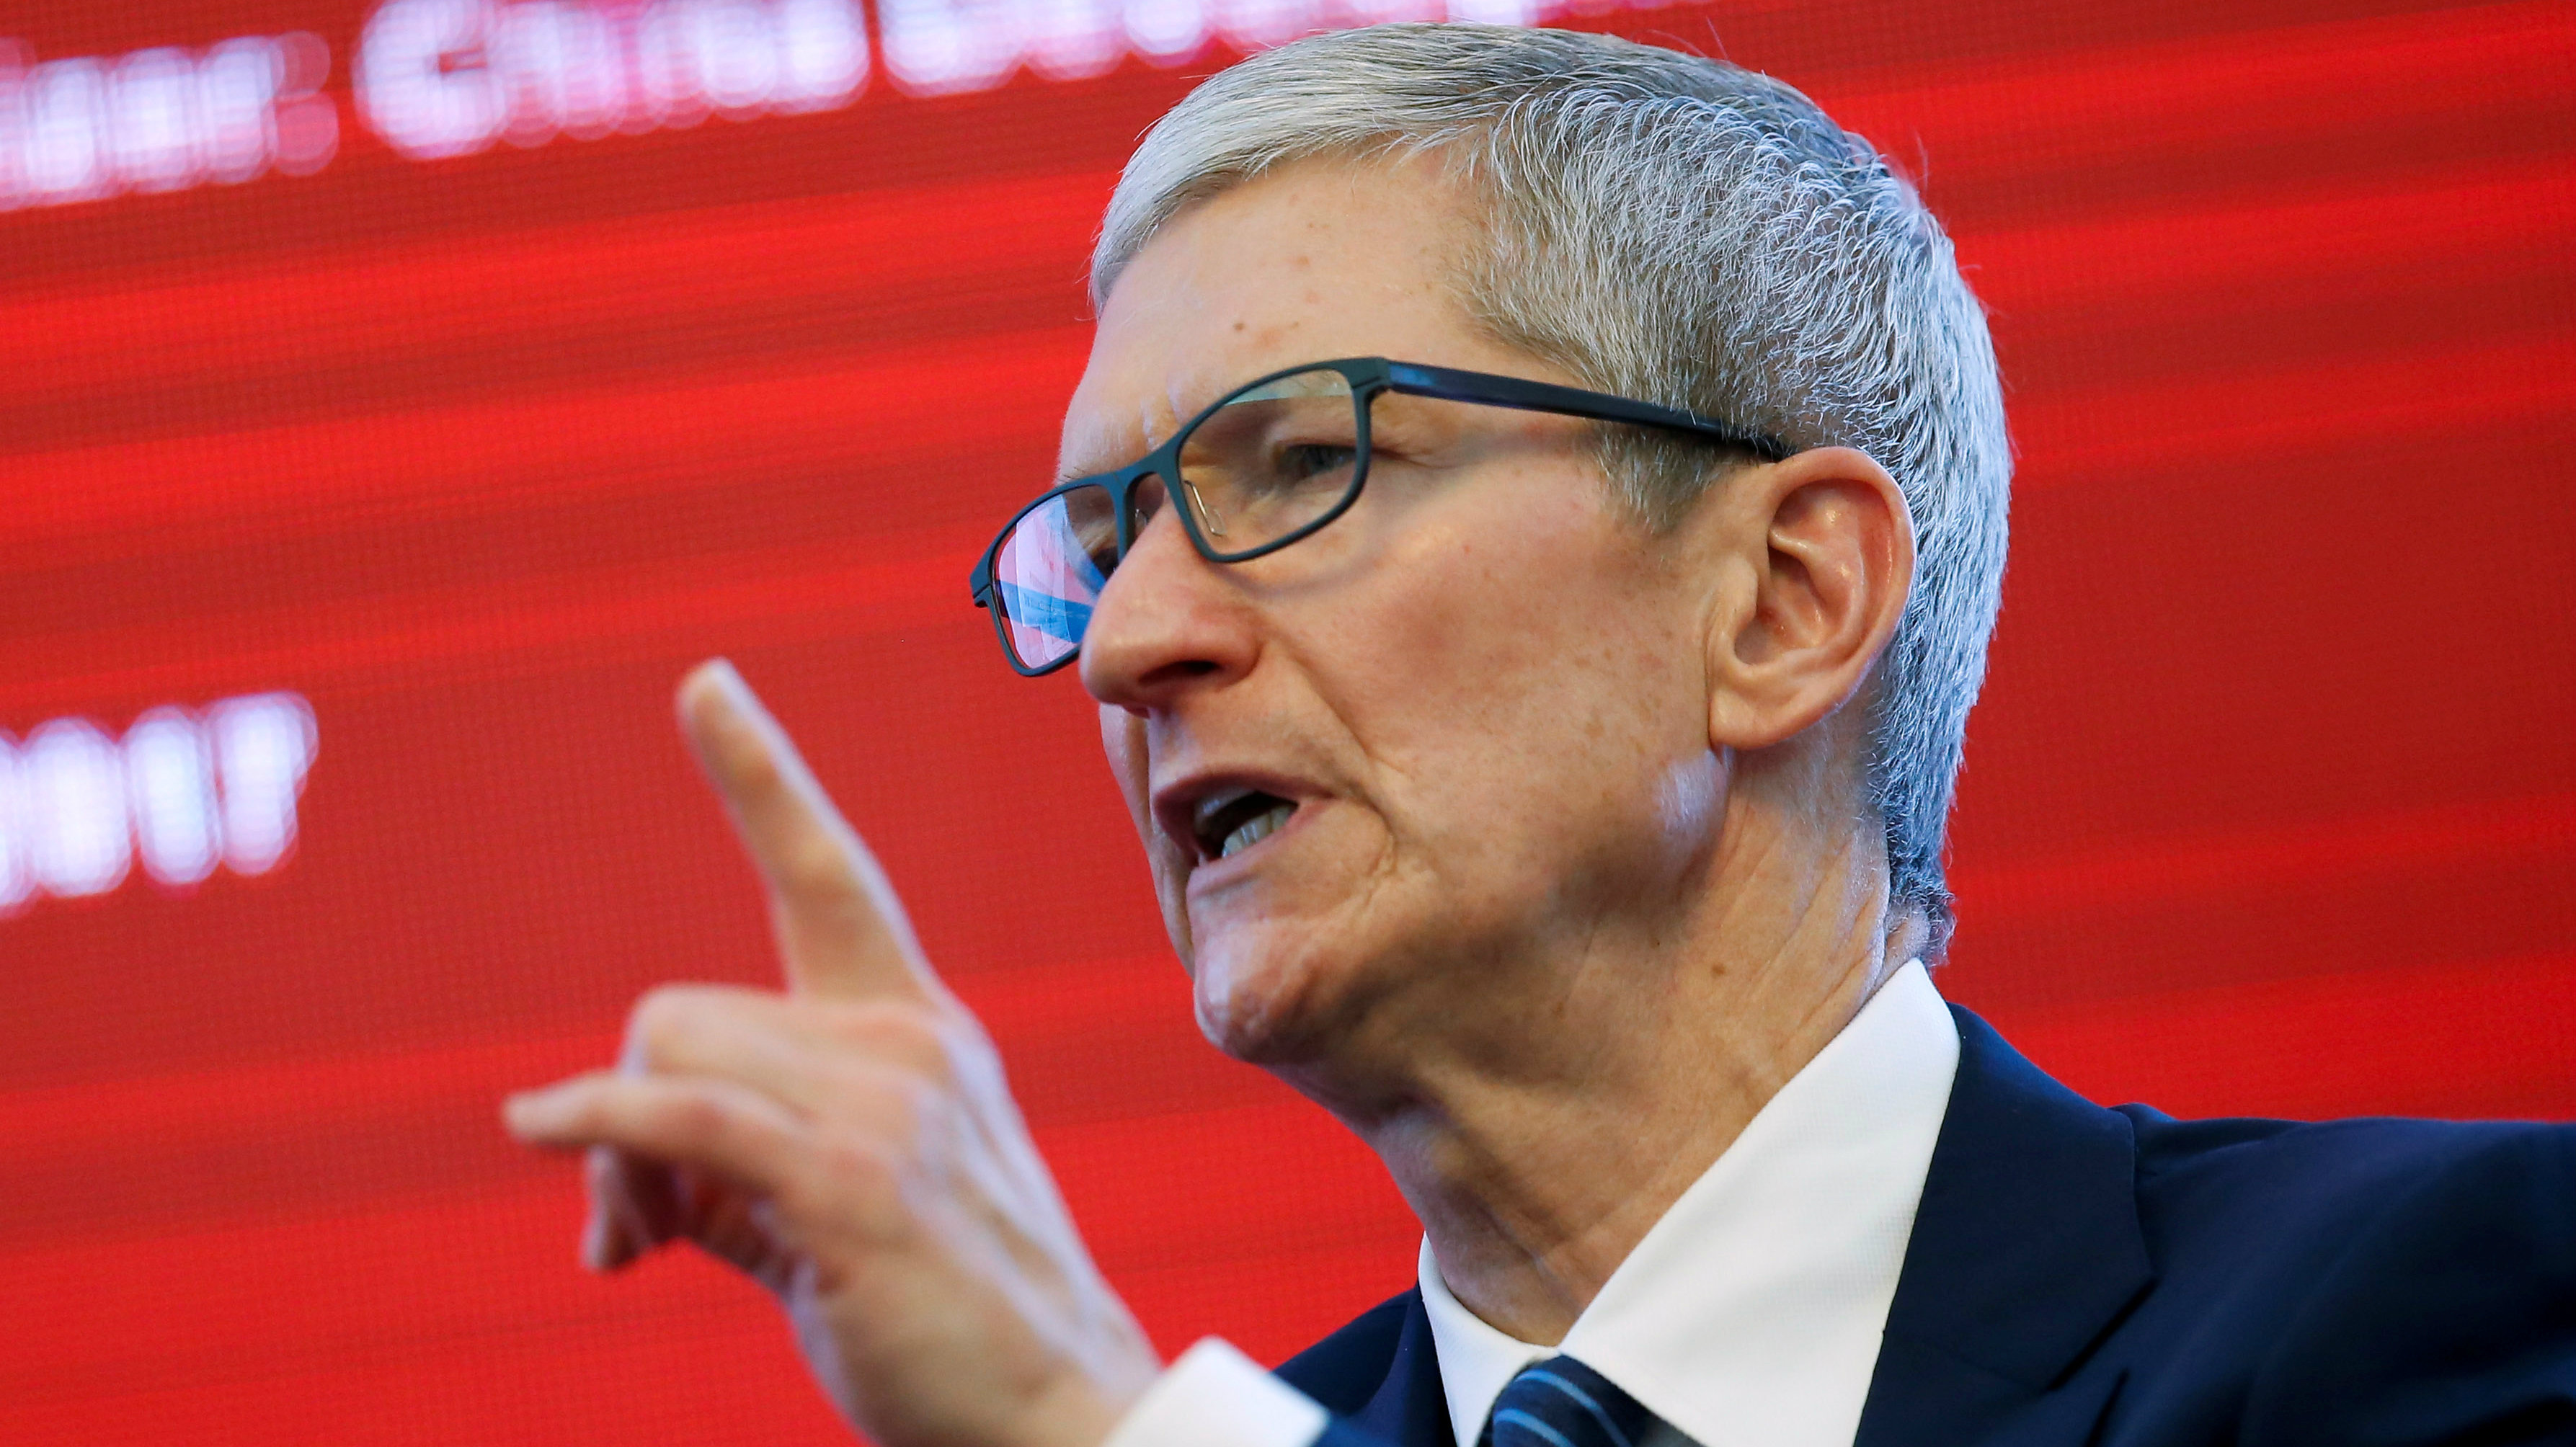 Apple CEO Tim Cook attends the China Development Forum in Beijing, China, March 18, 2017.